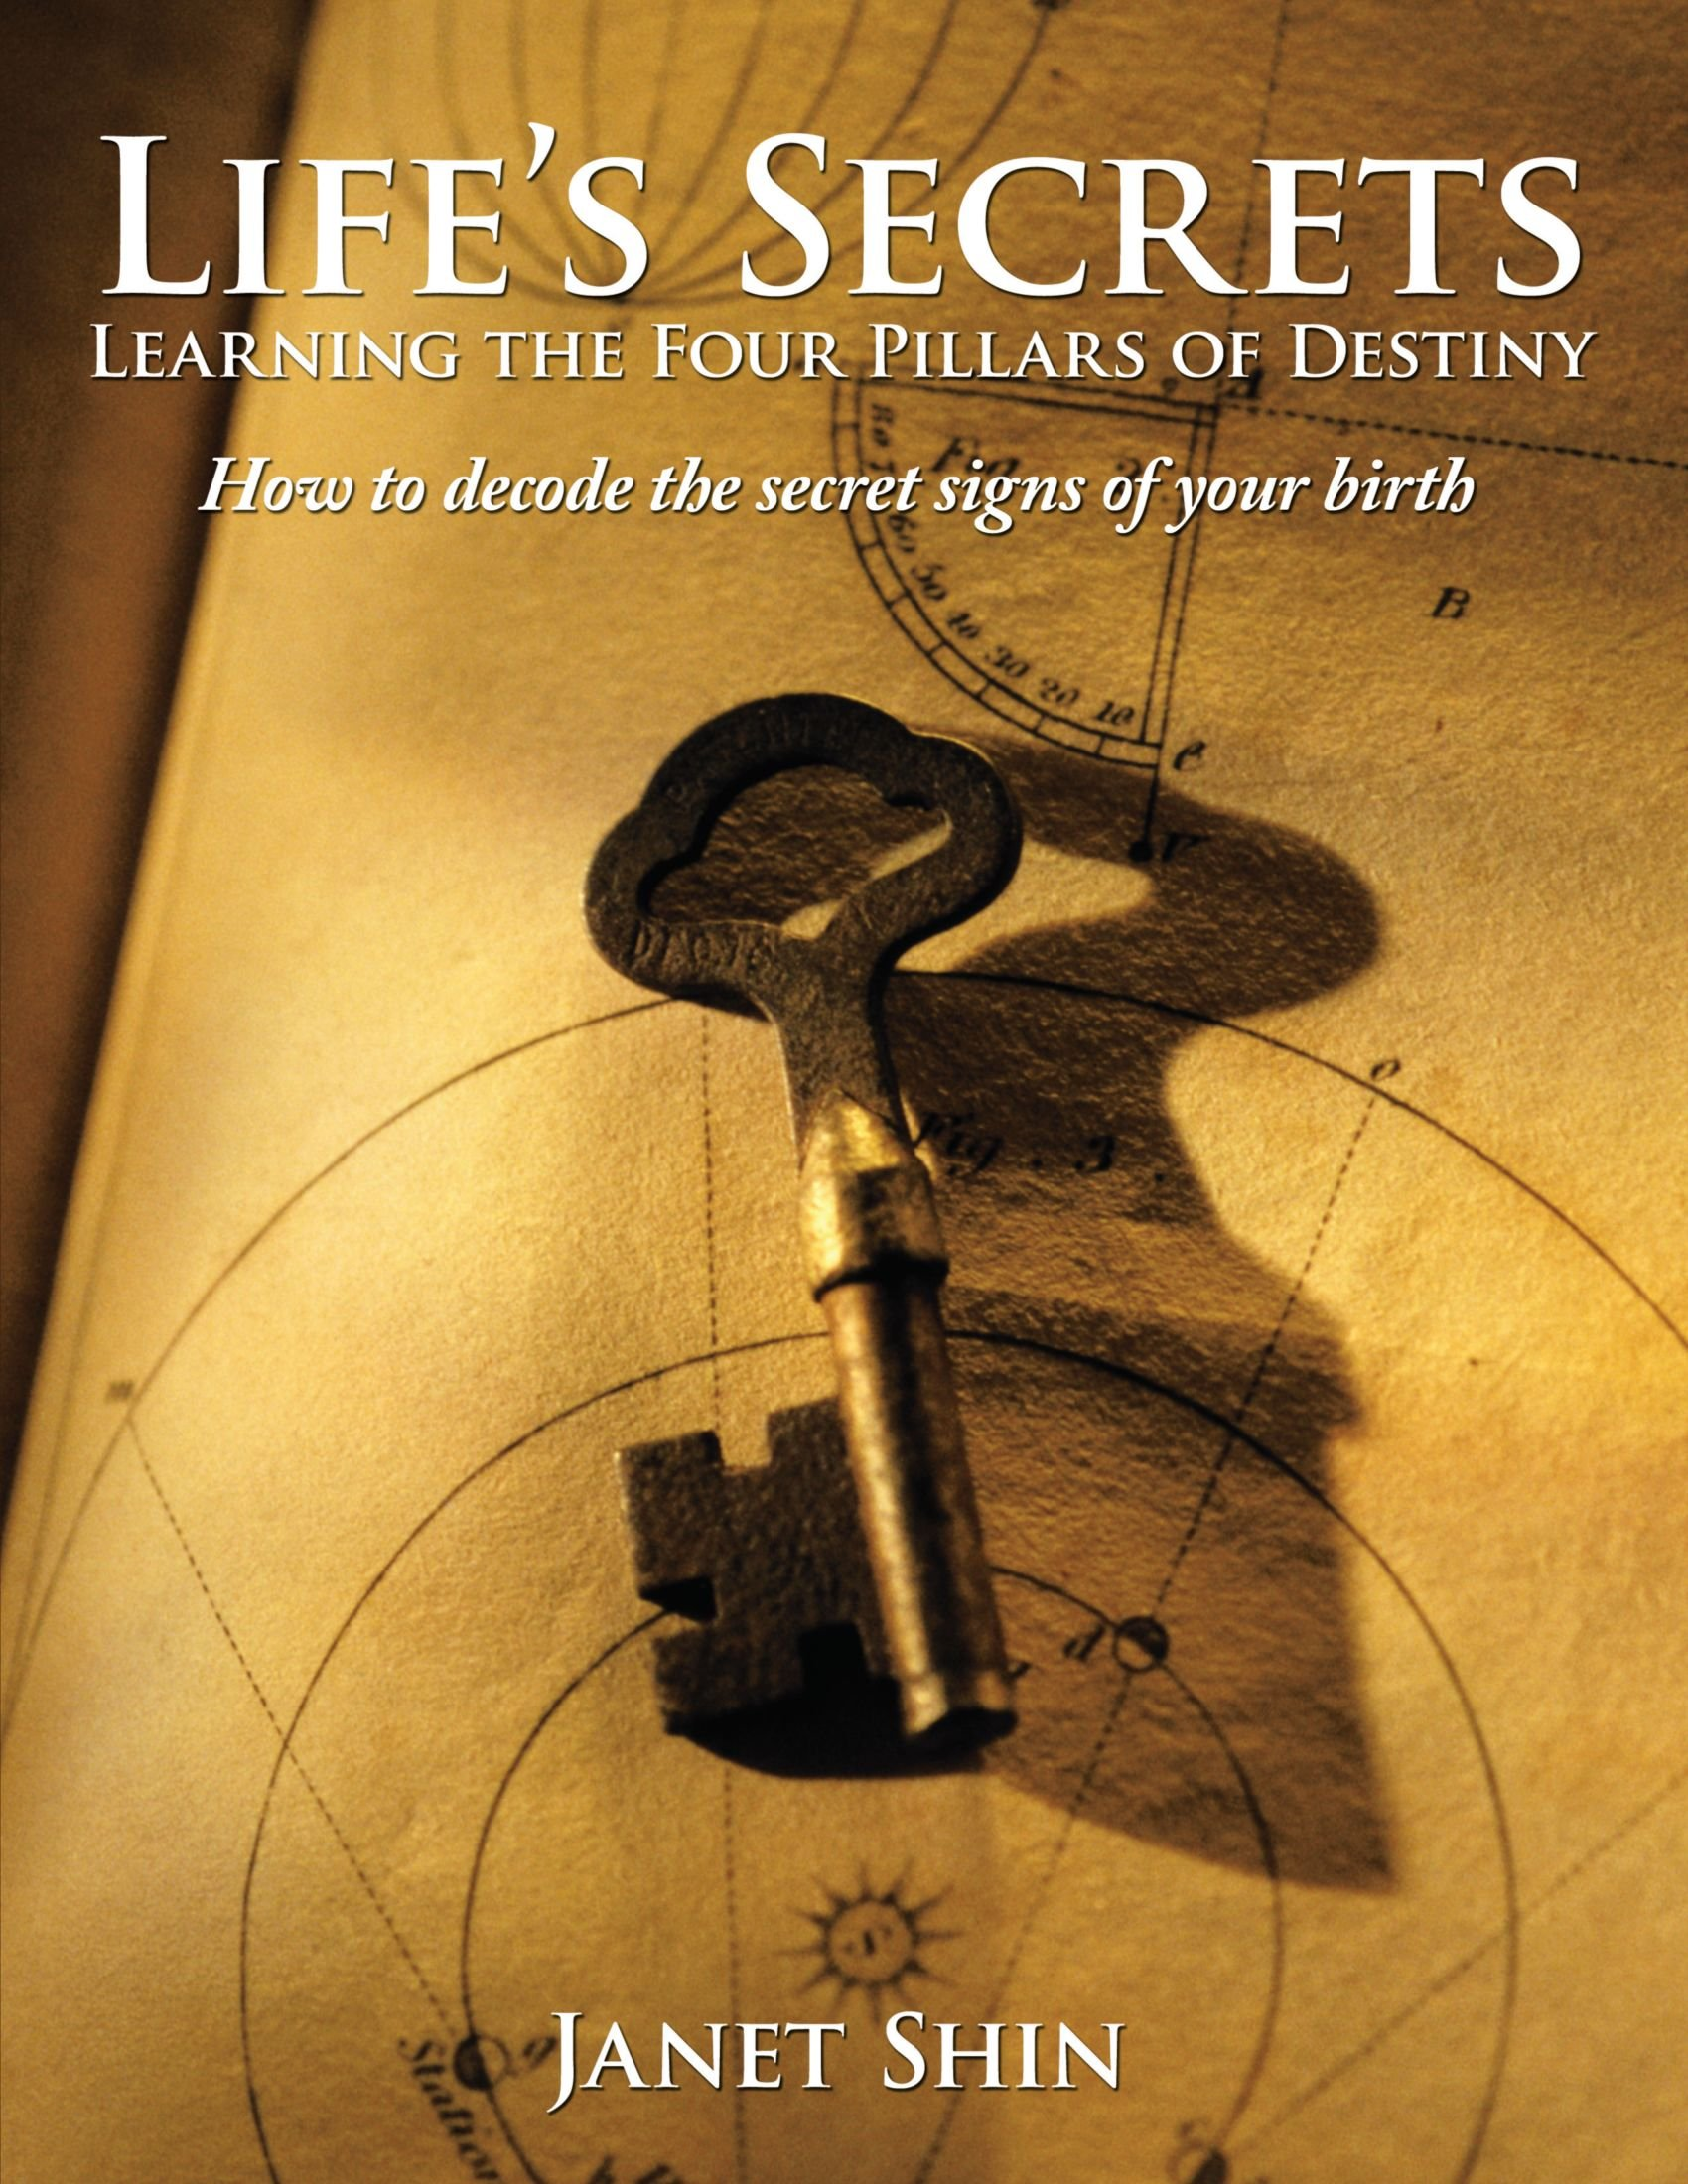 Life's Secrets Learning the Four Pillars of Destiny: How to Decode the Secret Signs of Your Birth